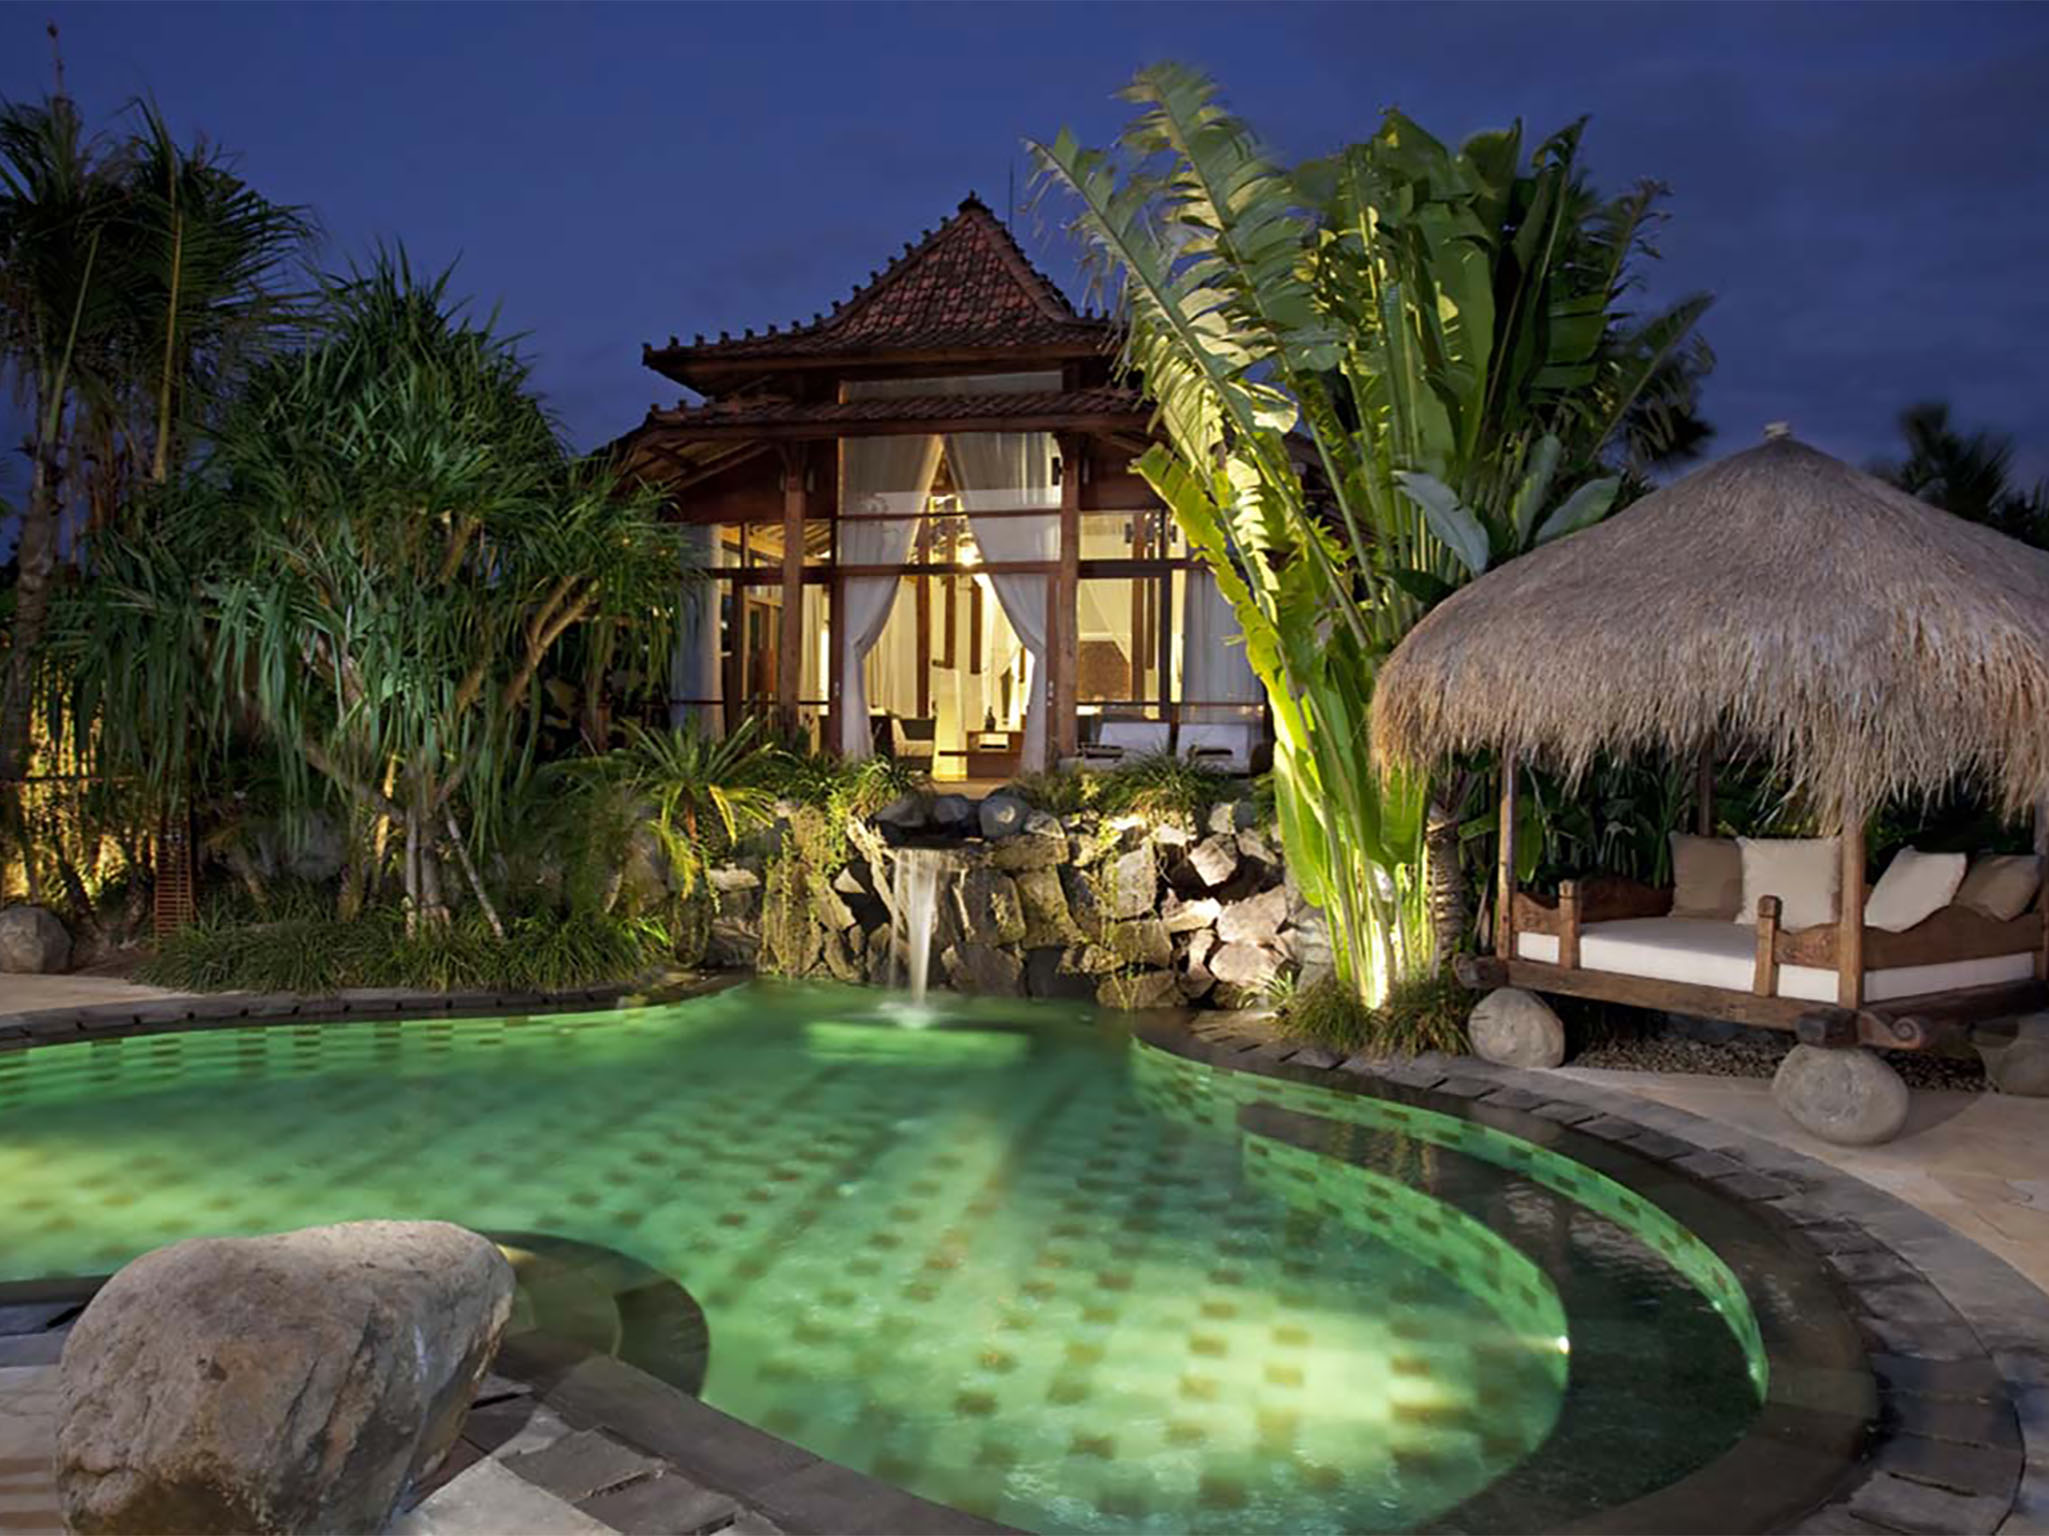 Villa Amy - The villa at night - Dea Villas - Villa Amy, Canggu, Bali